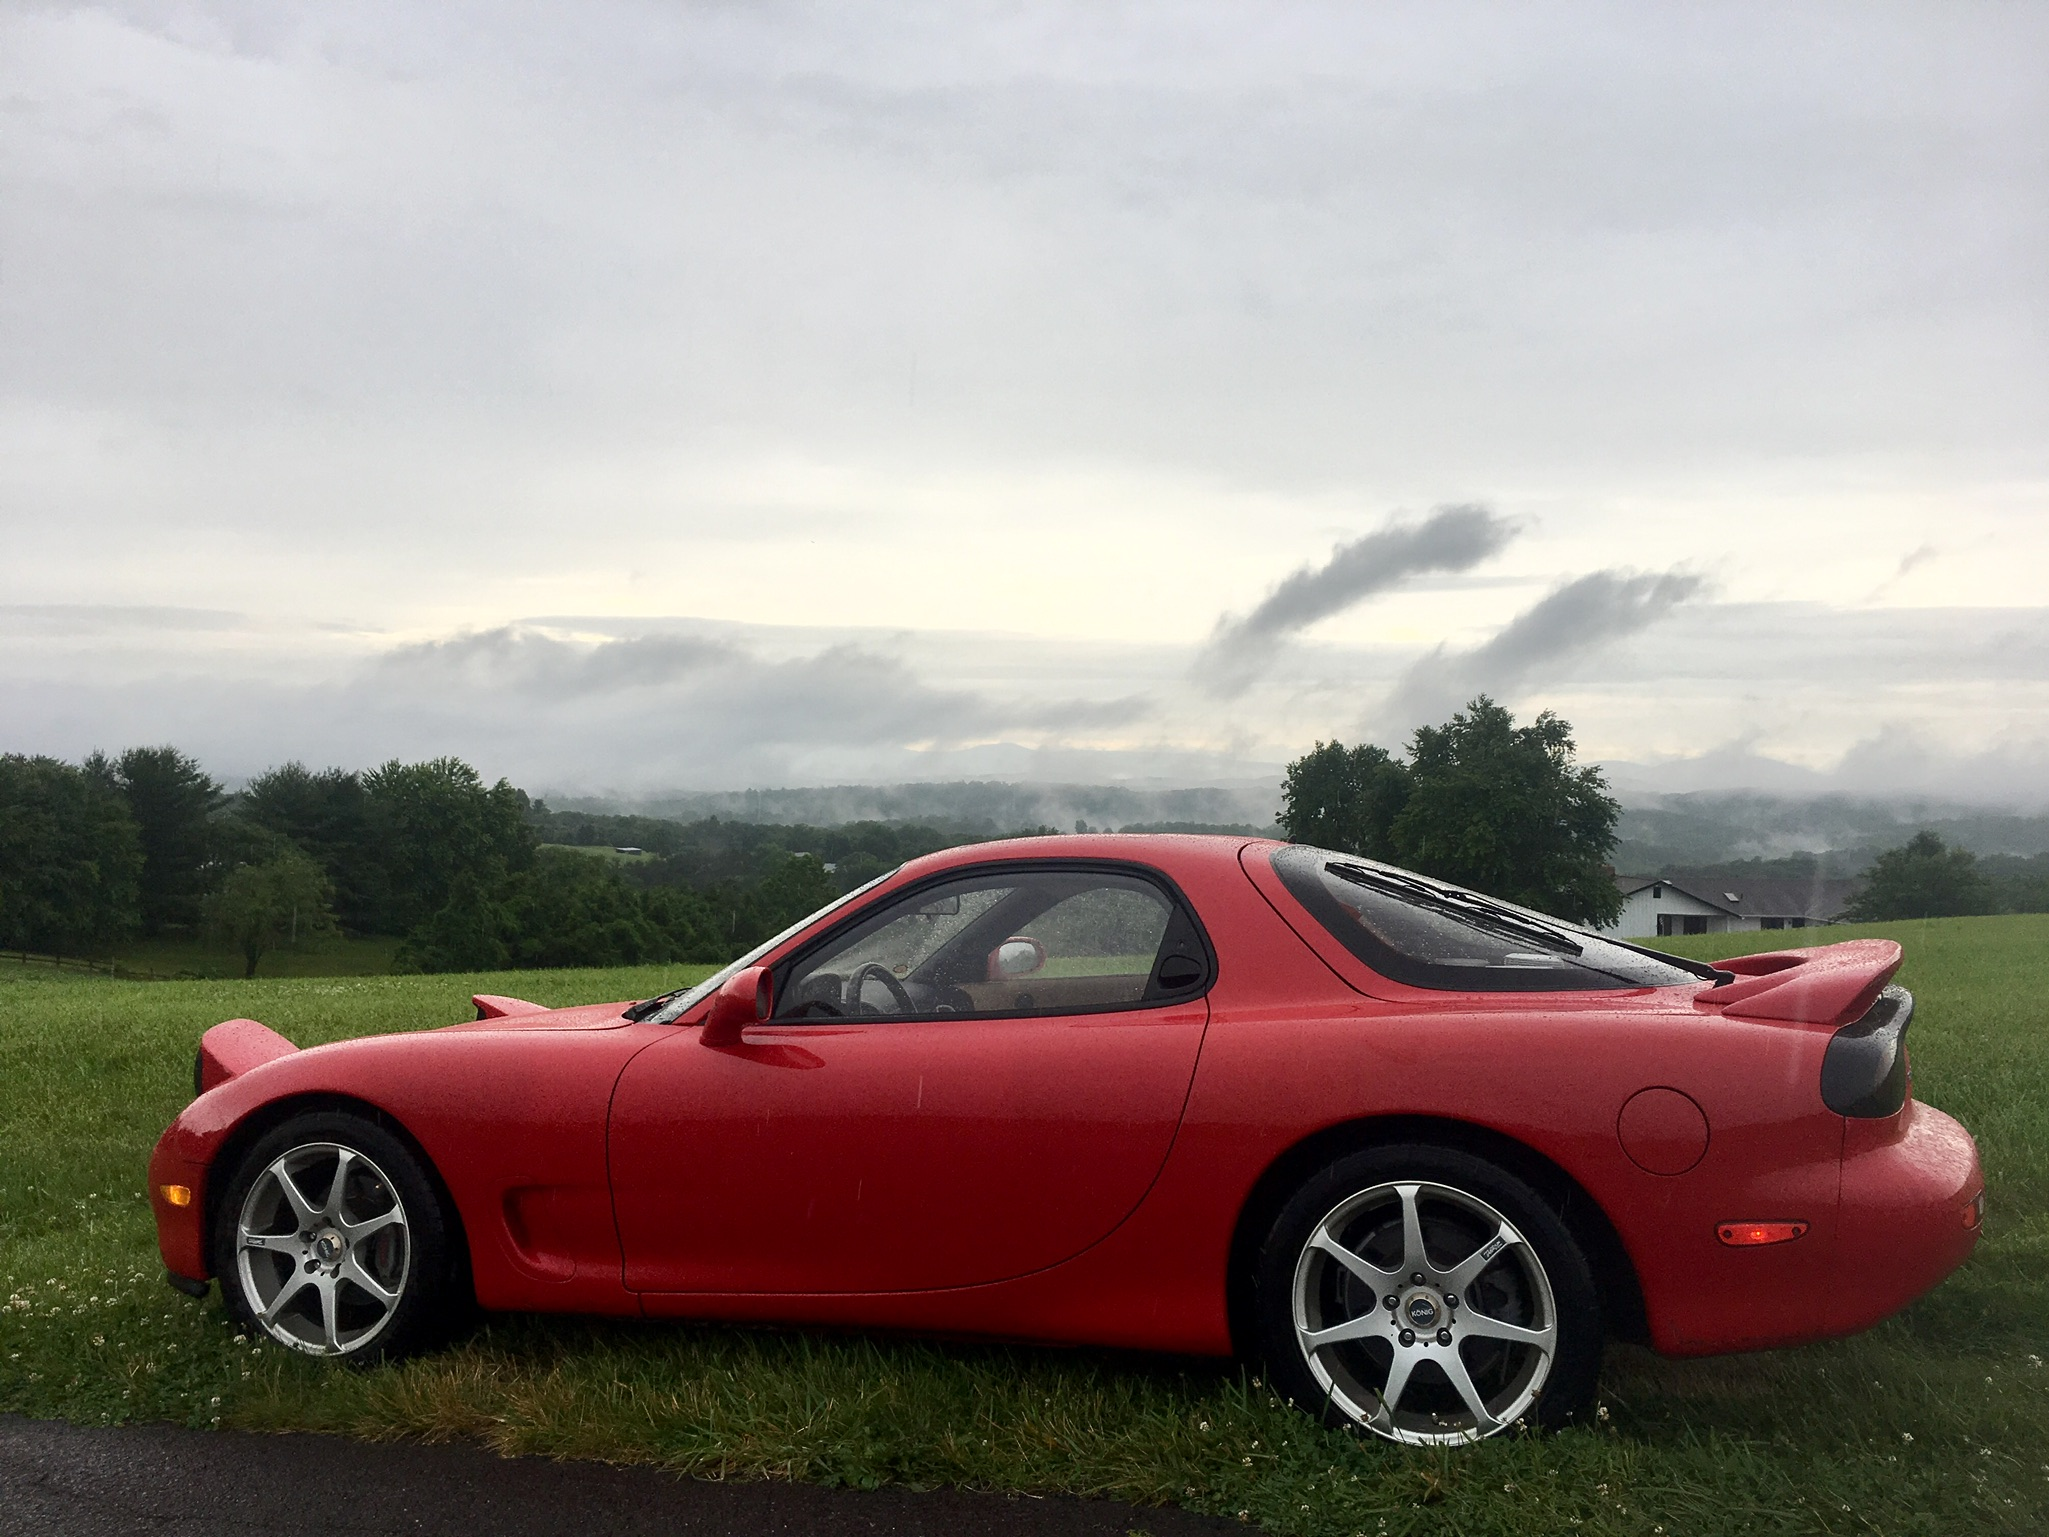 RX-7 on ridge.jpg